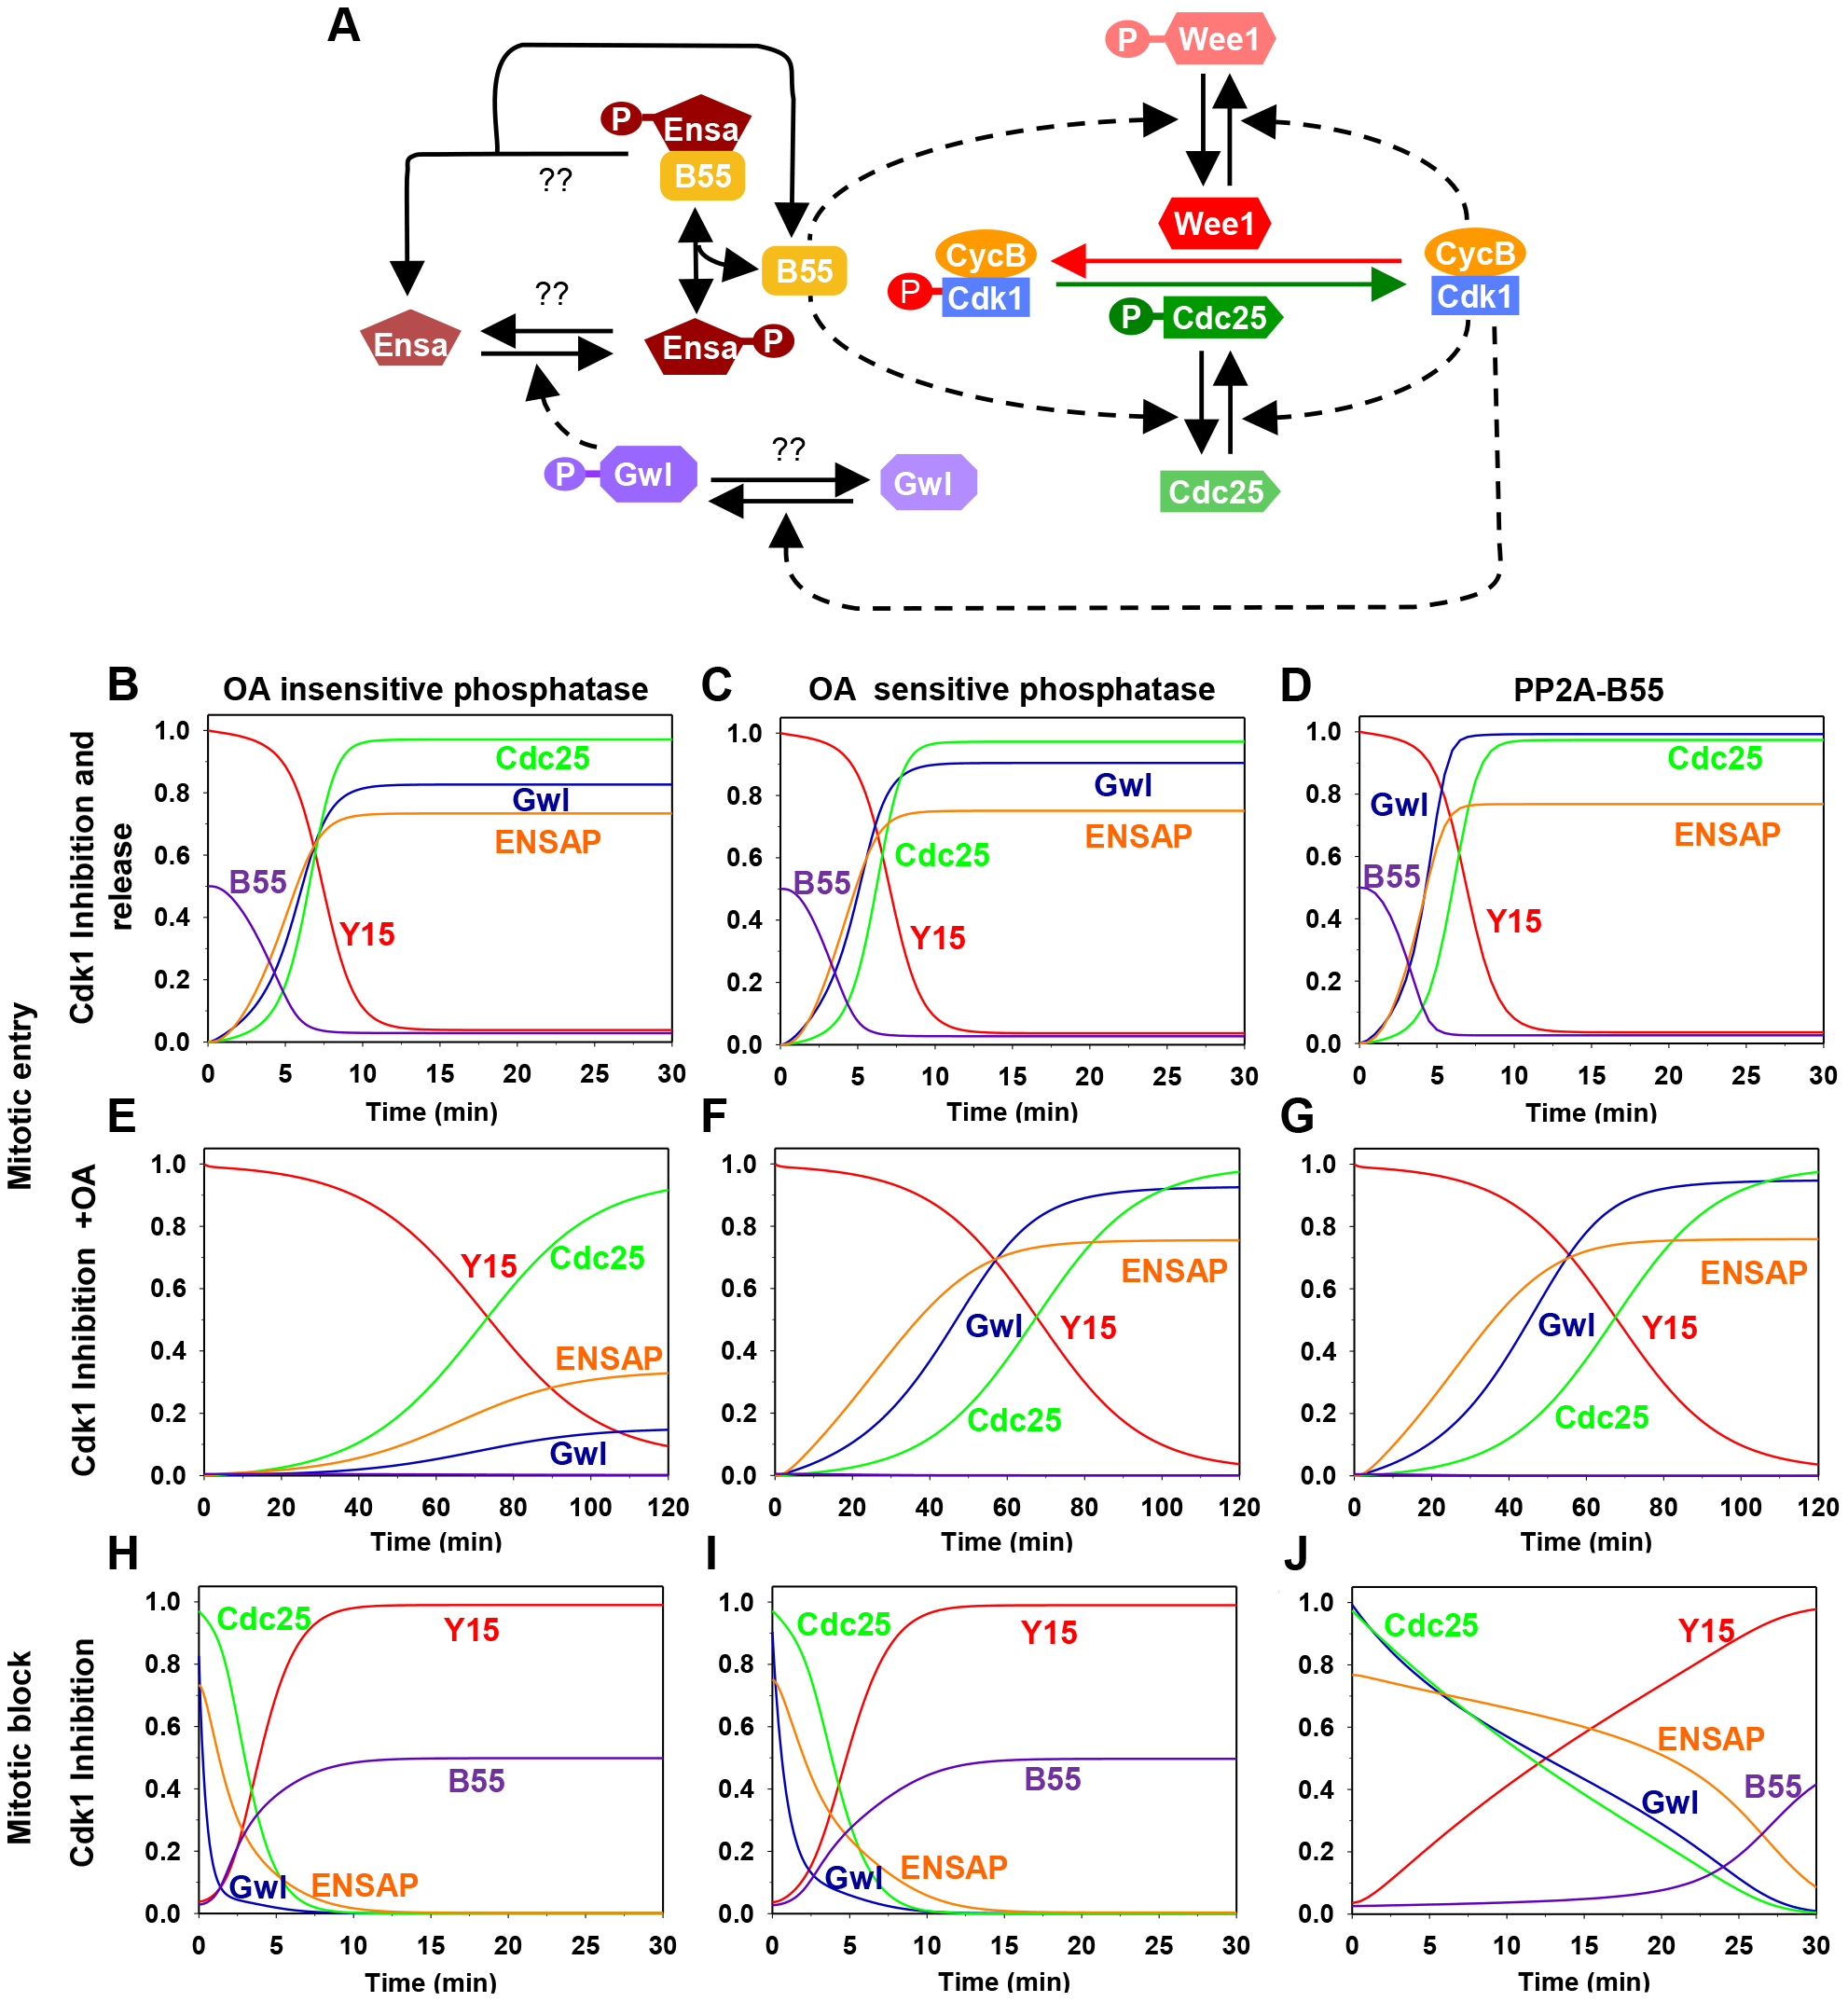 The regulatory network and the dynamics of the mitotic switch.